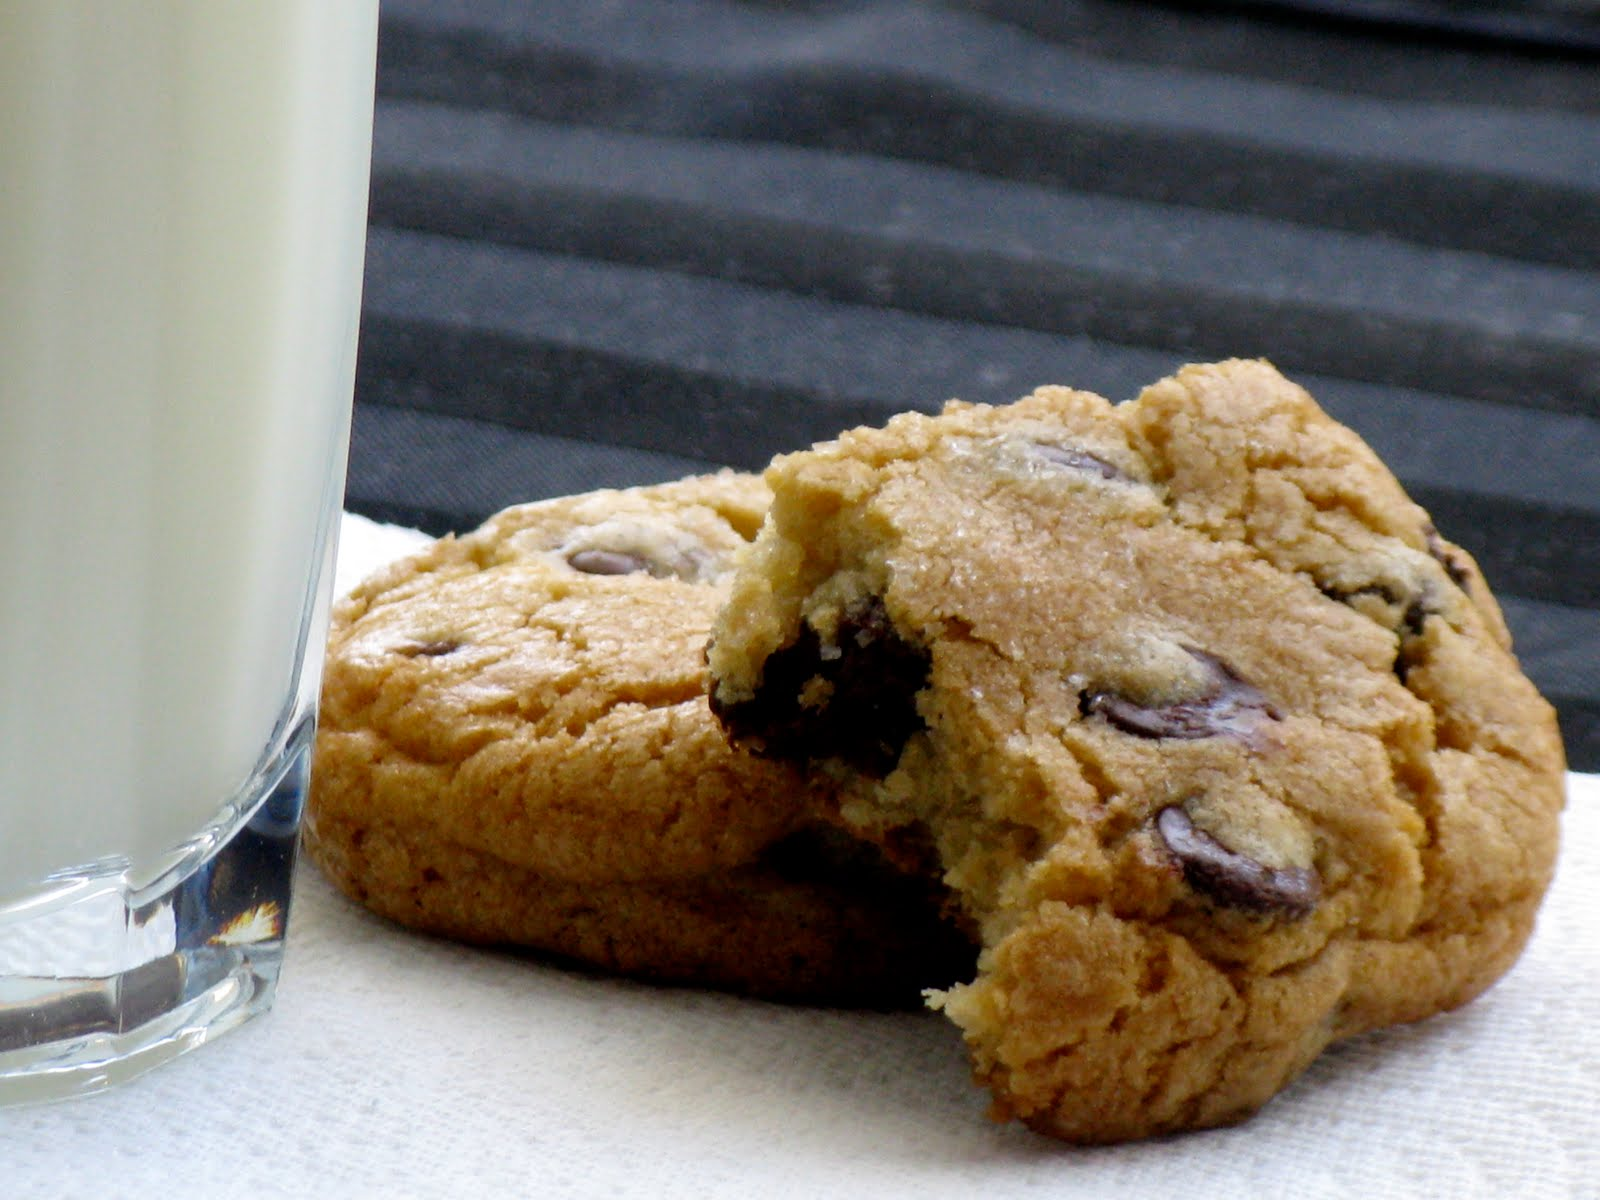 The Cilantropist: Jacques Torres Chocolate Chip Cookies